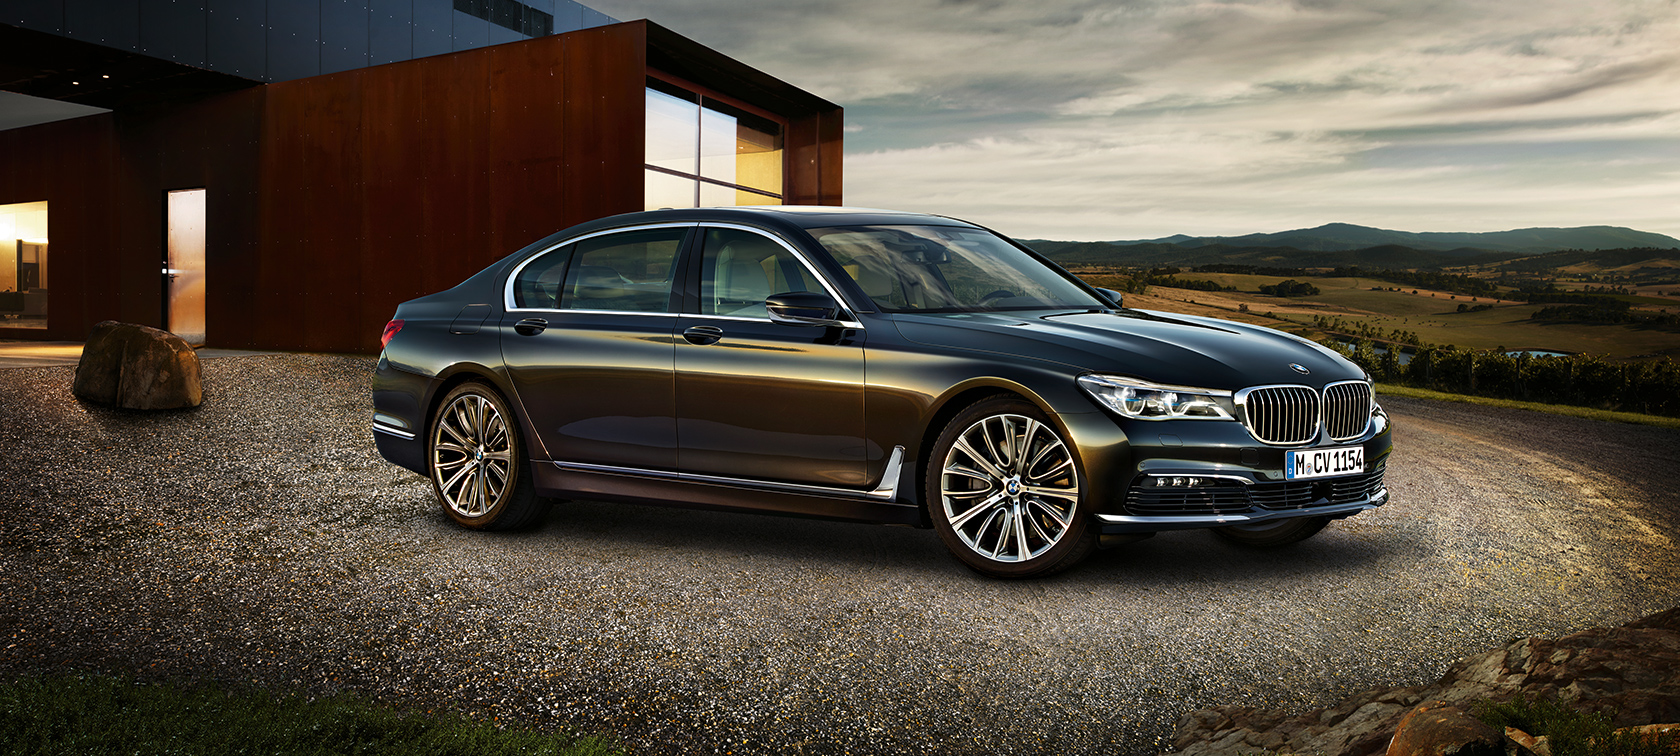 BMW 7-Series Sedan in black: frontside view close to luxury condo